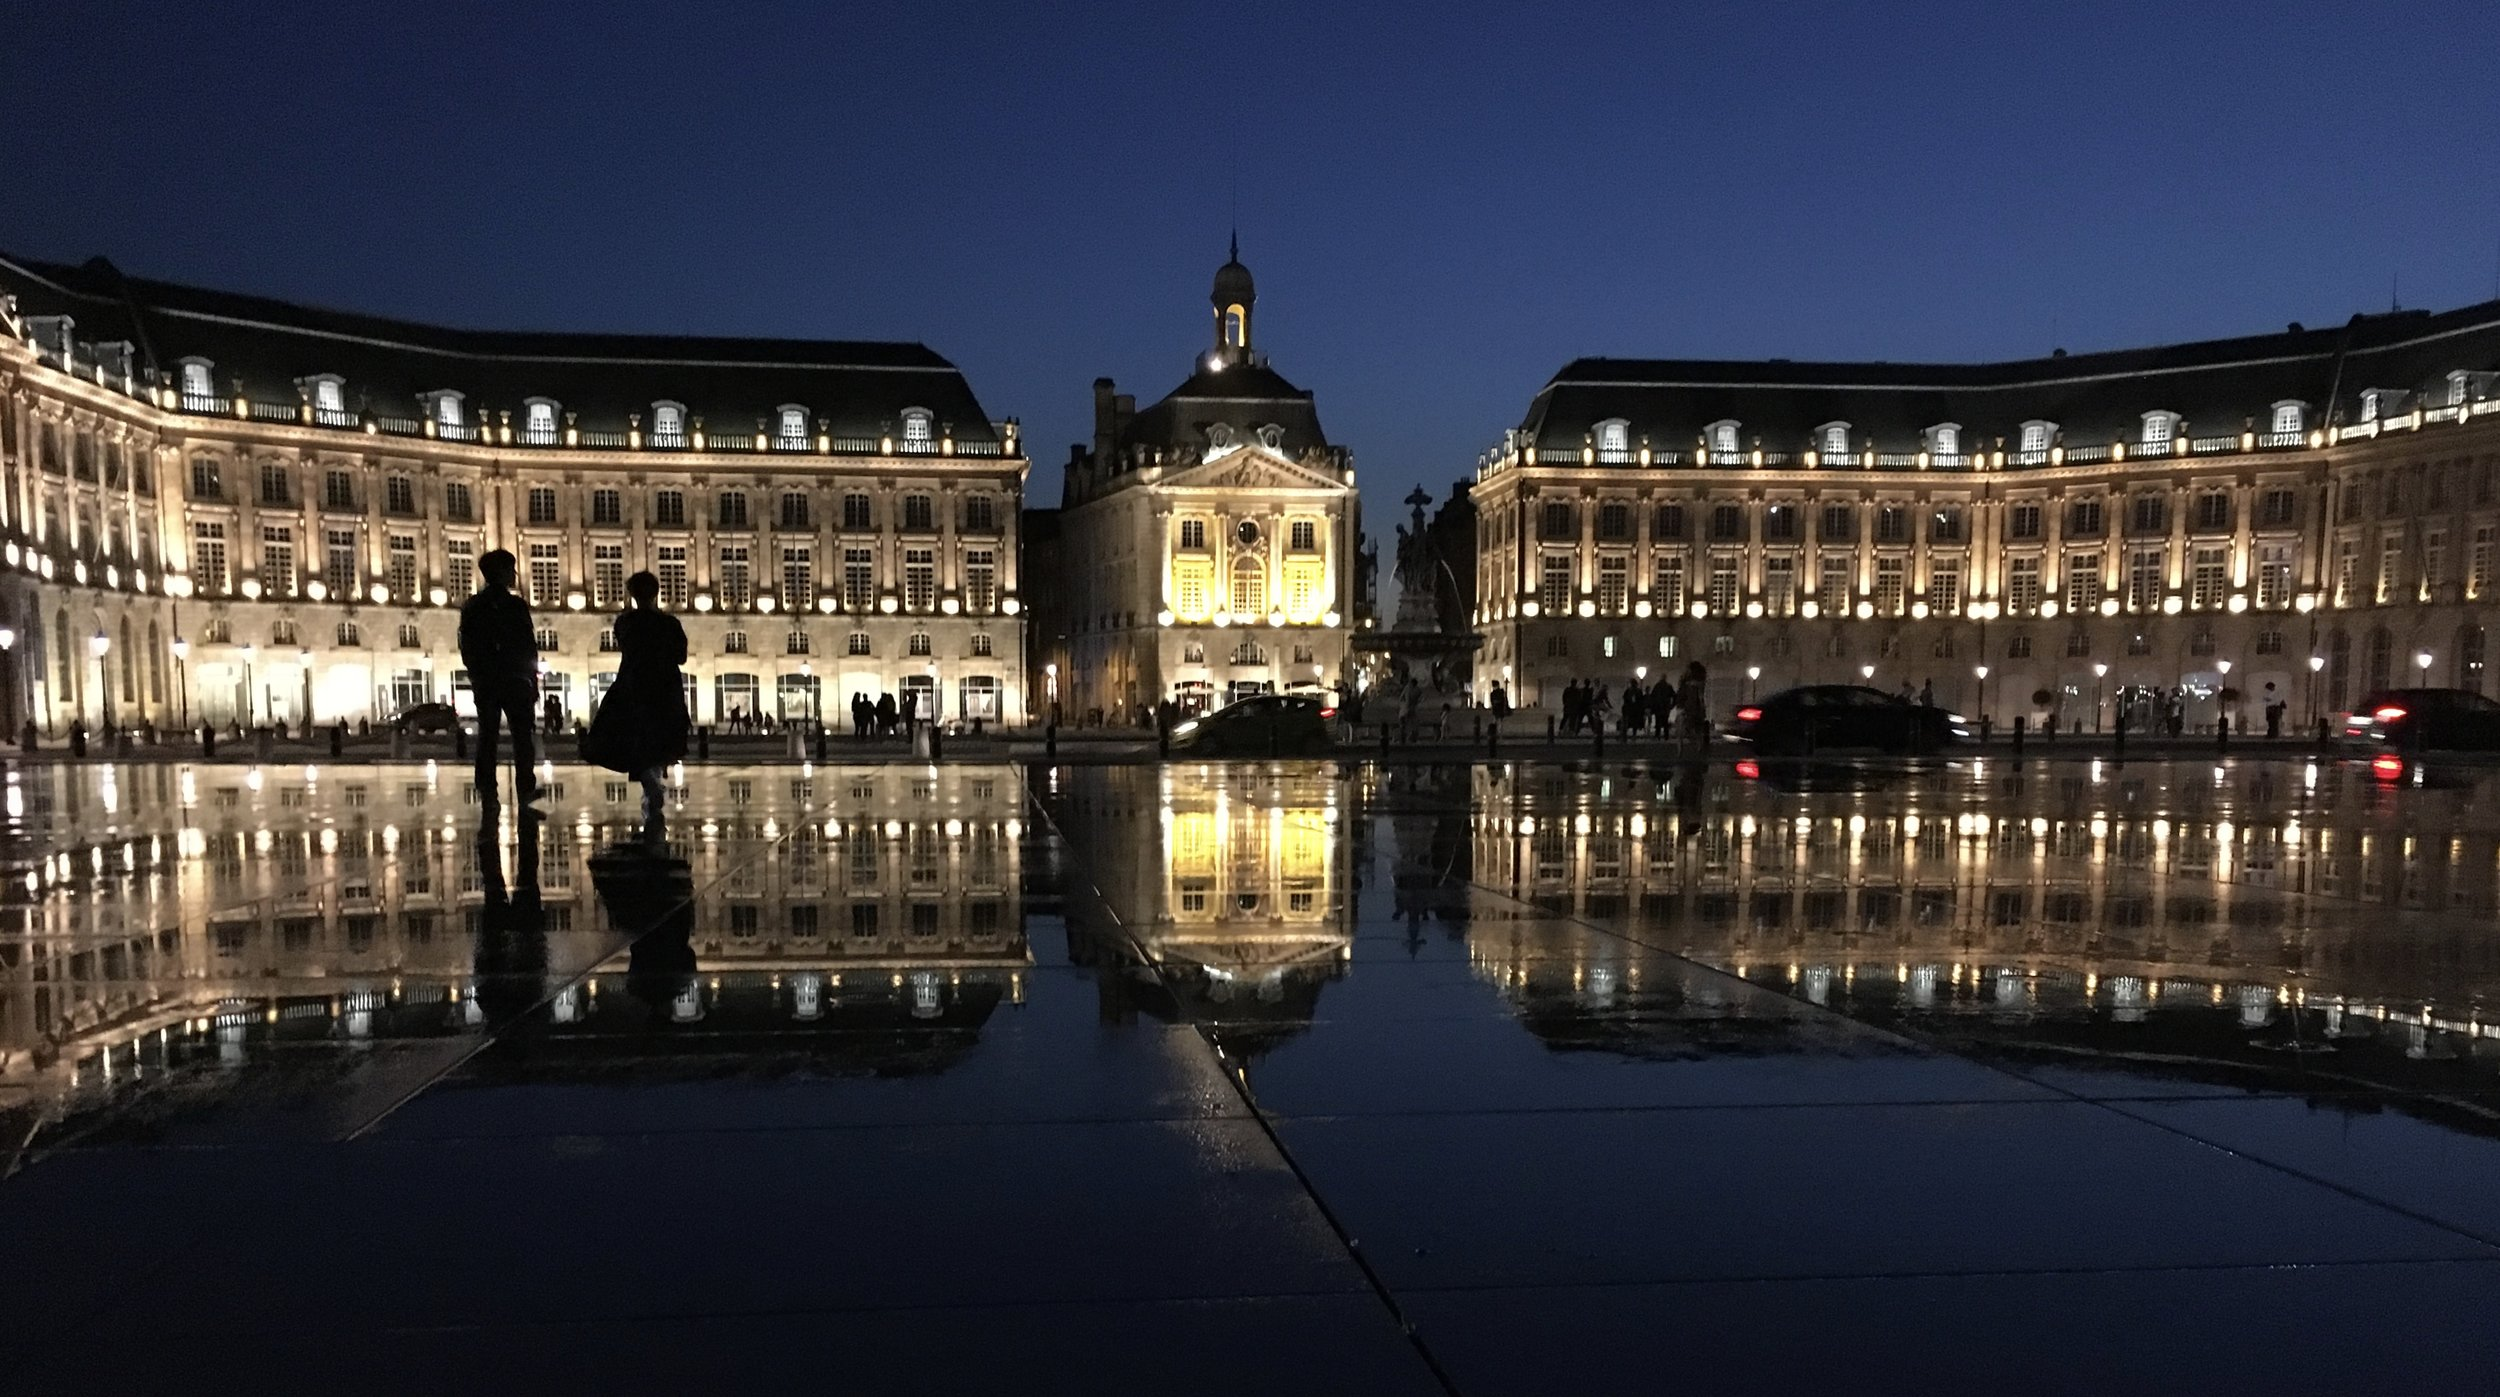 """Miroir d'Eau,"" the world's largest reflection pool, sits on the door step of the Place de la Bourse and is a refreshing place to cool off on a warm day. It's like a day at the pool for kids and at night, the reflecting pool is a stunning setting for couples looking for a little romance."